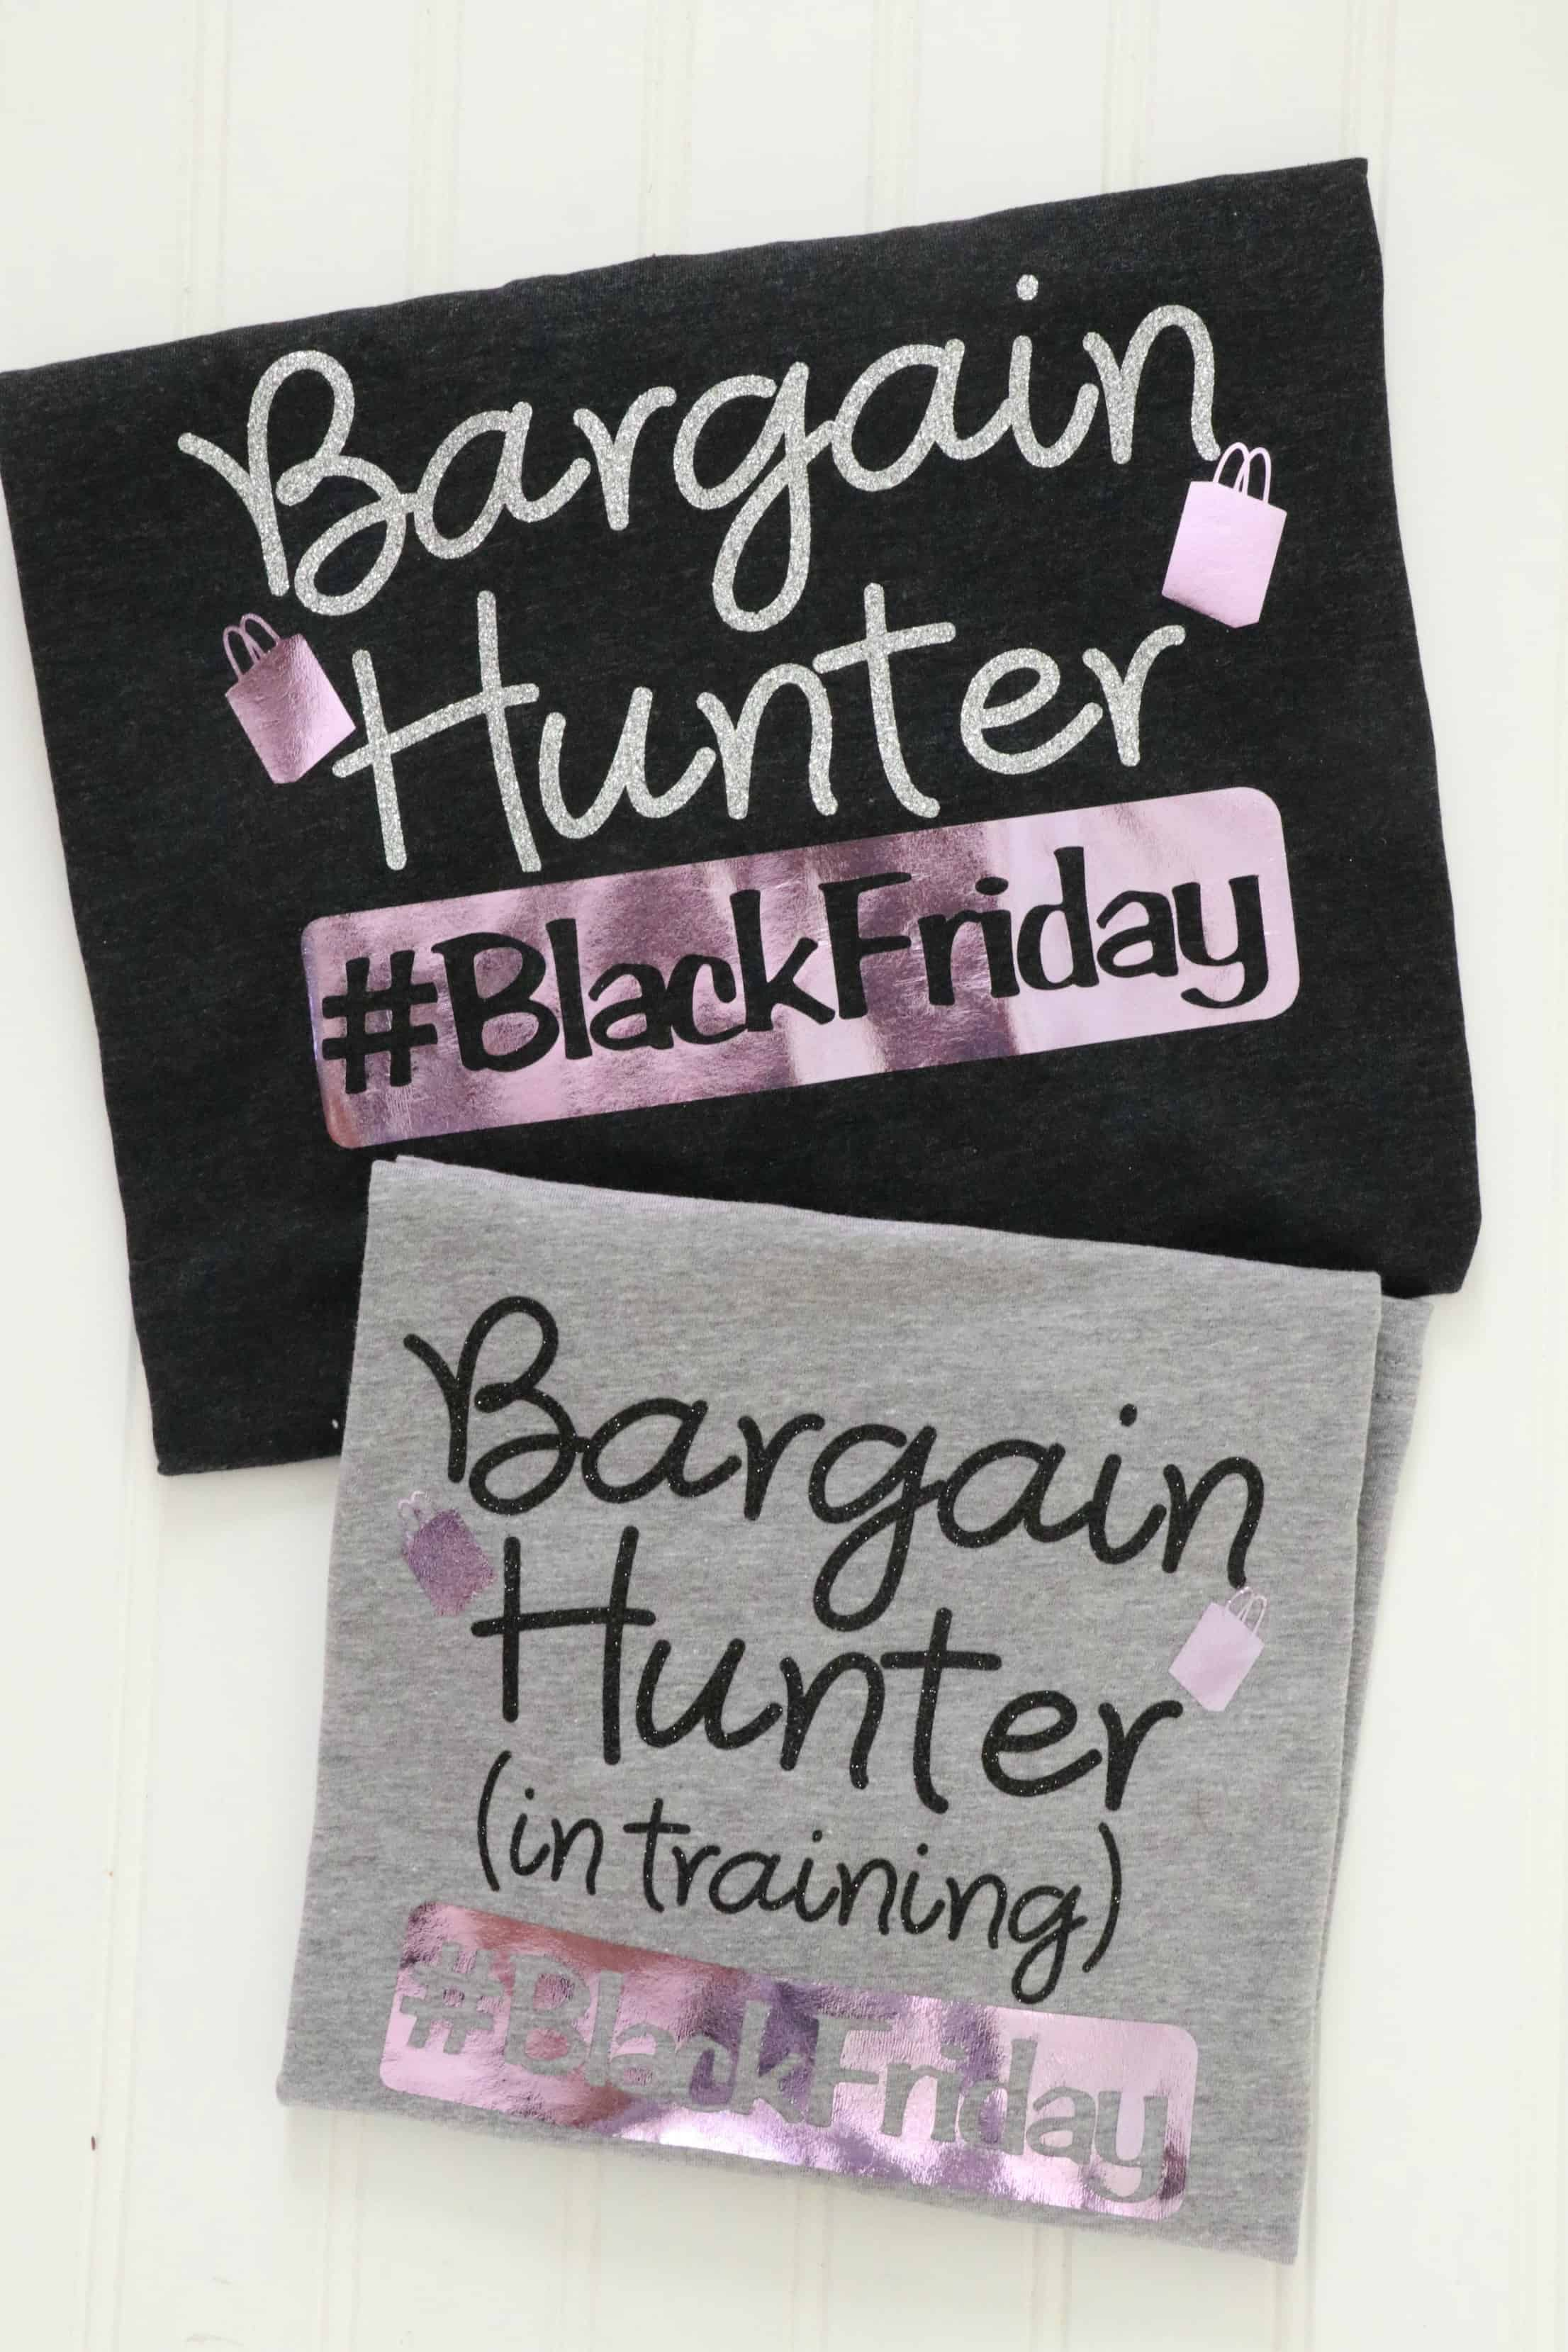 Bargain Hunter shirts for Black Friday #BlackFriday